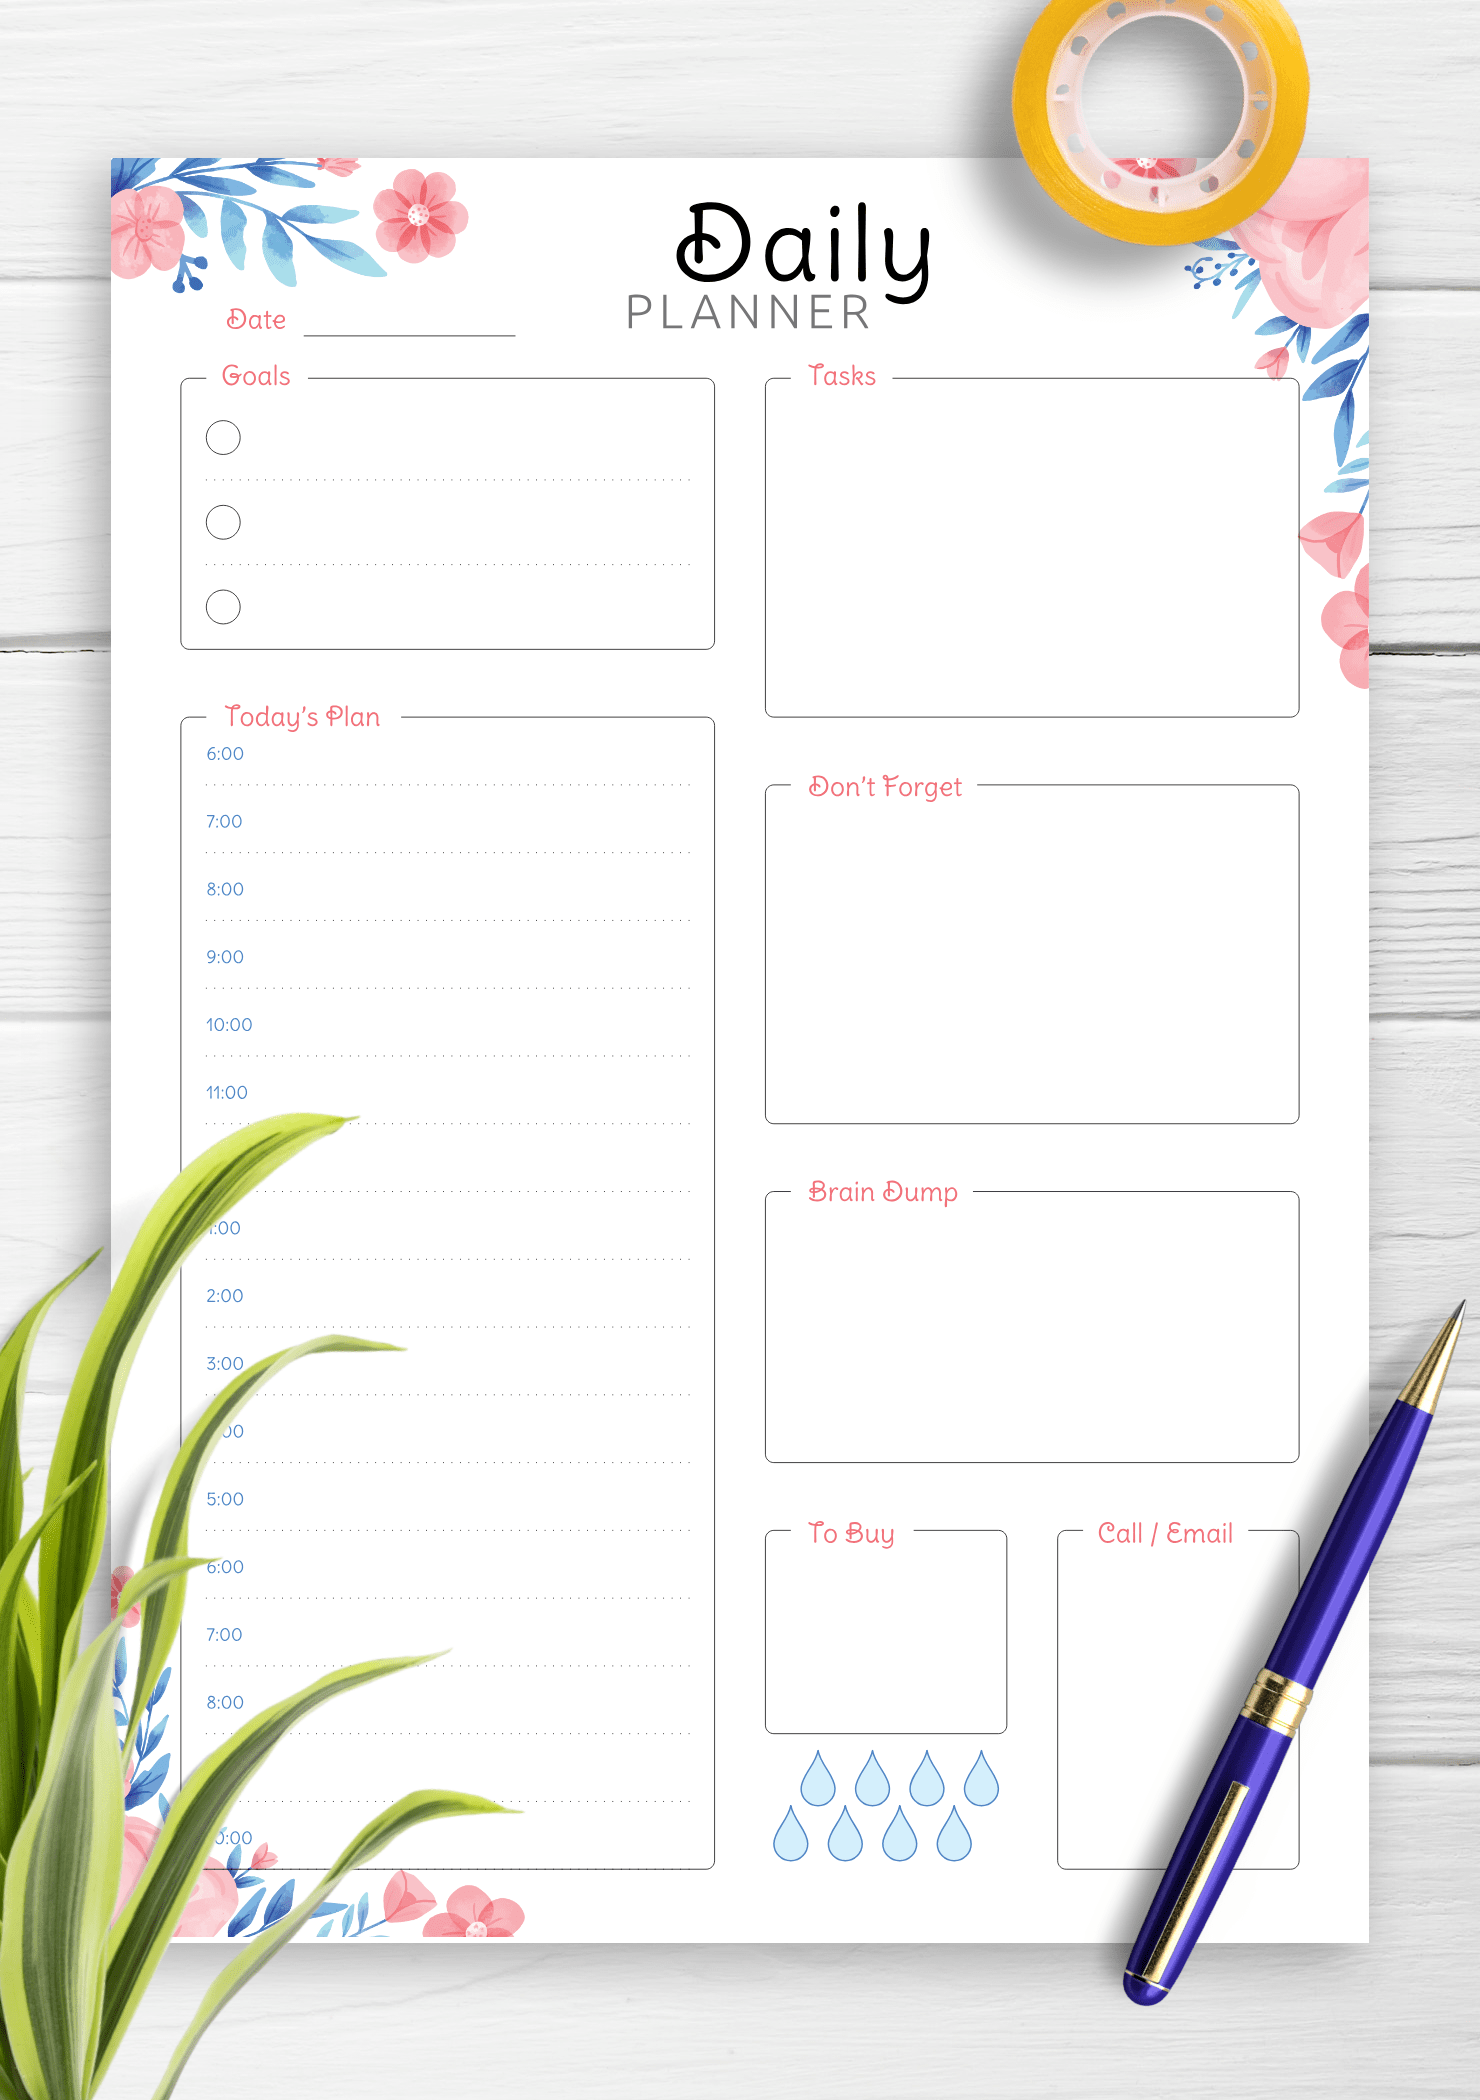 Download Printable Hourly Planner With Daily Tasks Amp Goals